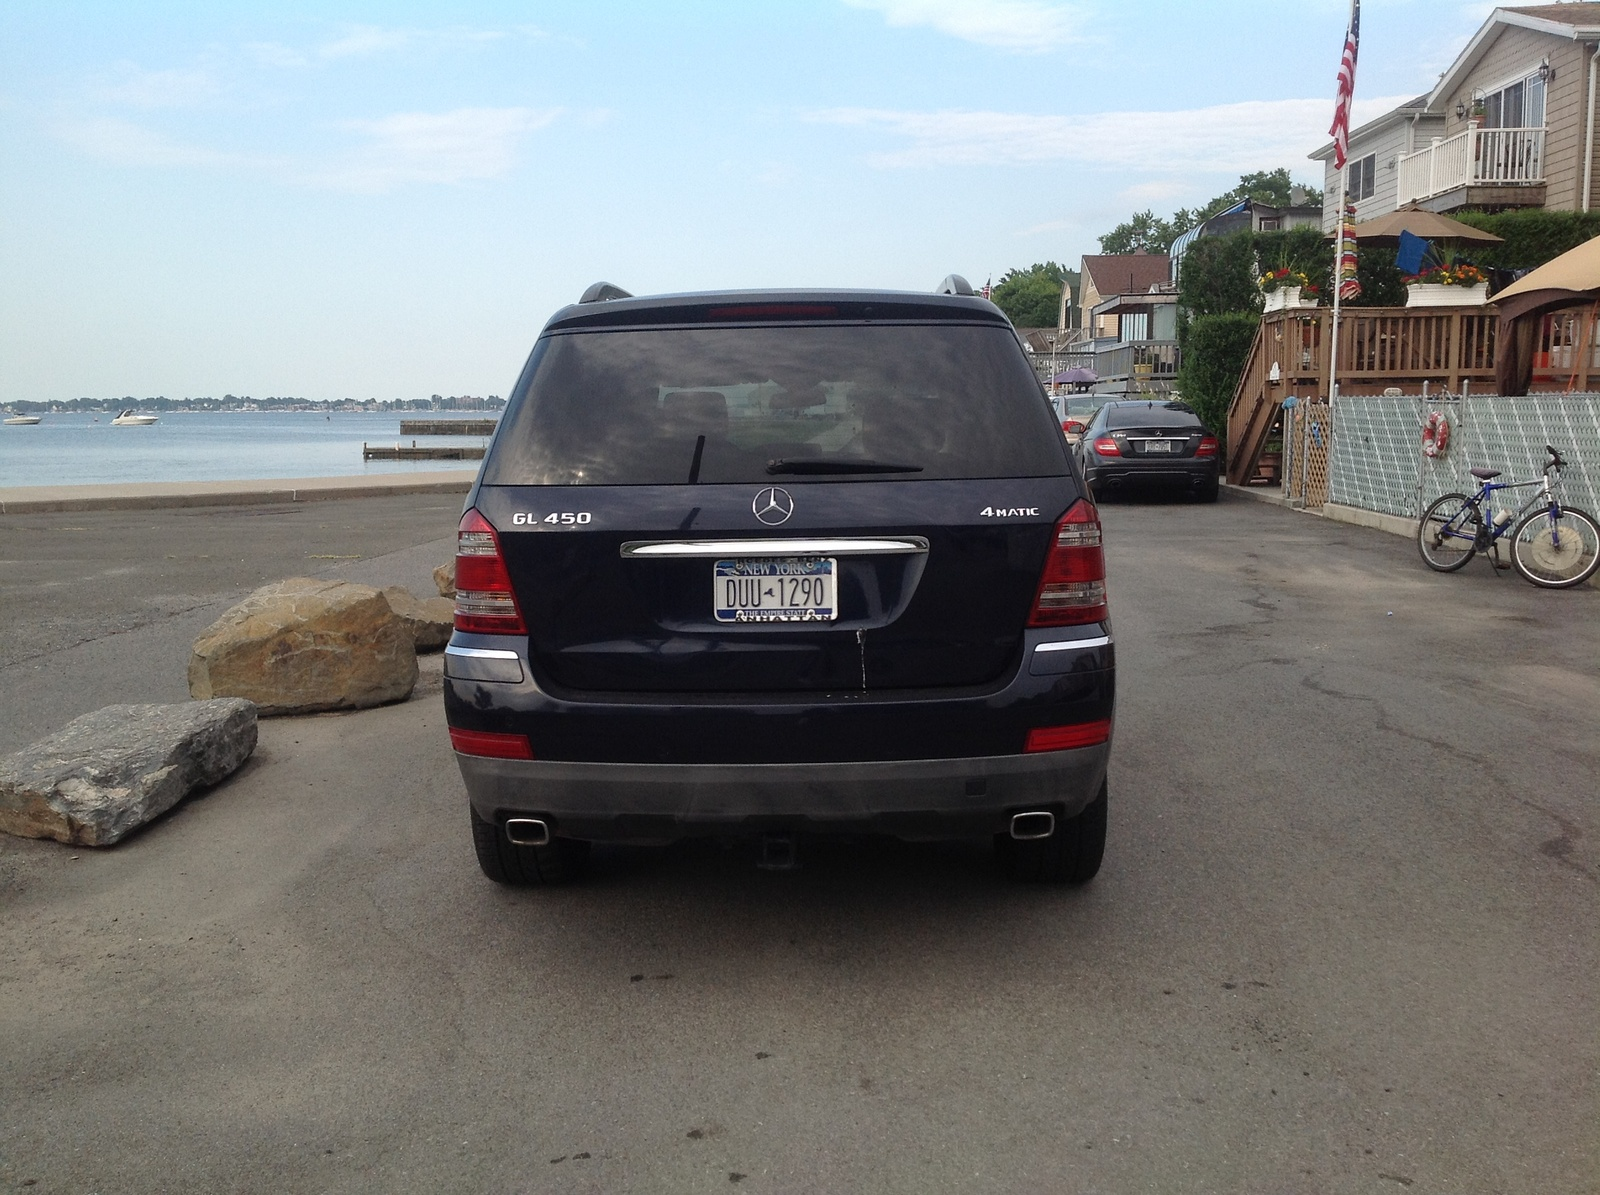 Picture of 2007 mercedes benz gl class gl450 exterior for 2007 mercedes benz gl450